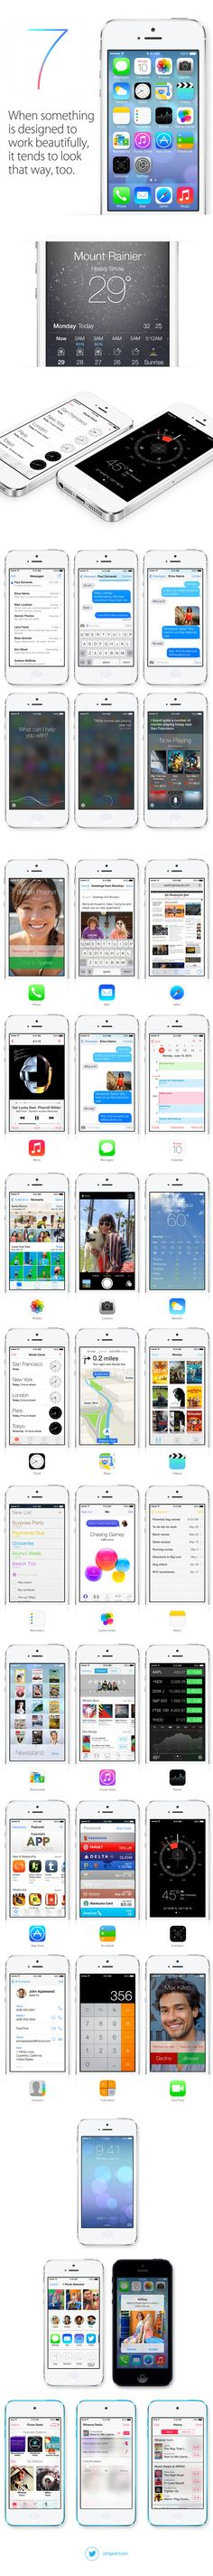 #Apple IOS7 design #flatui #ui more at http://www.apple.com/ios/ios7/design/